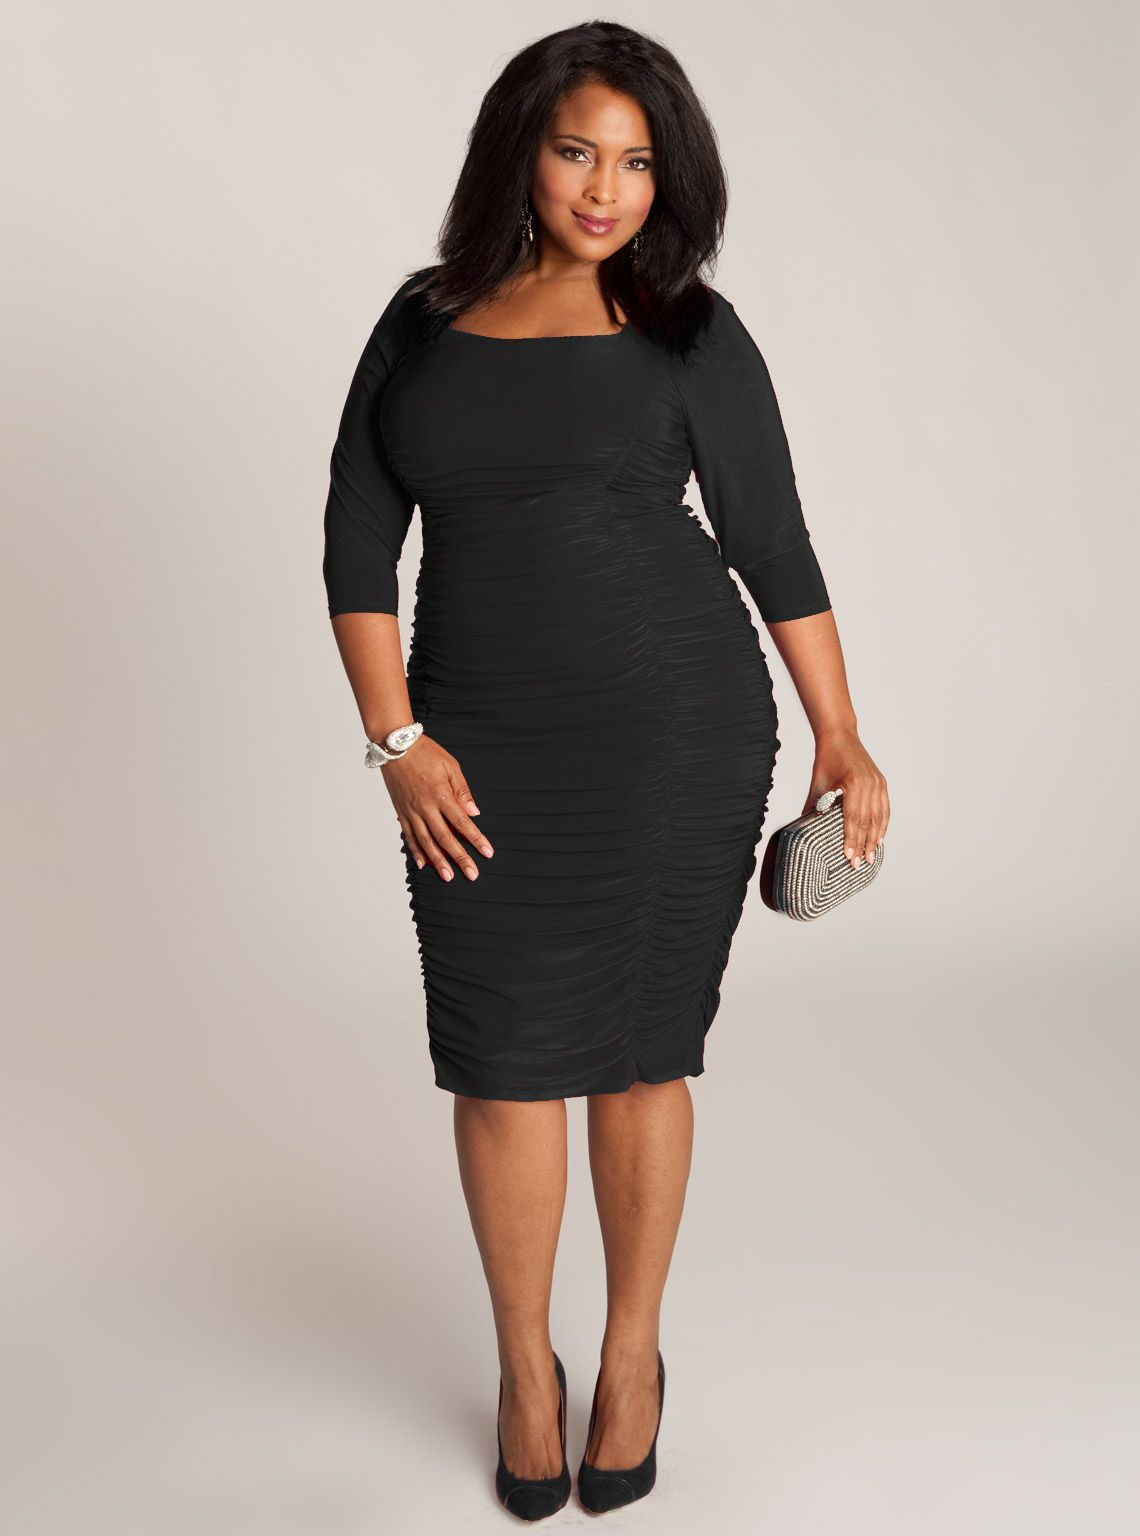 Black dresses for plus size women cheap